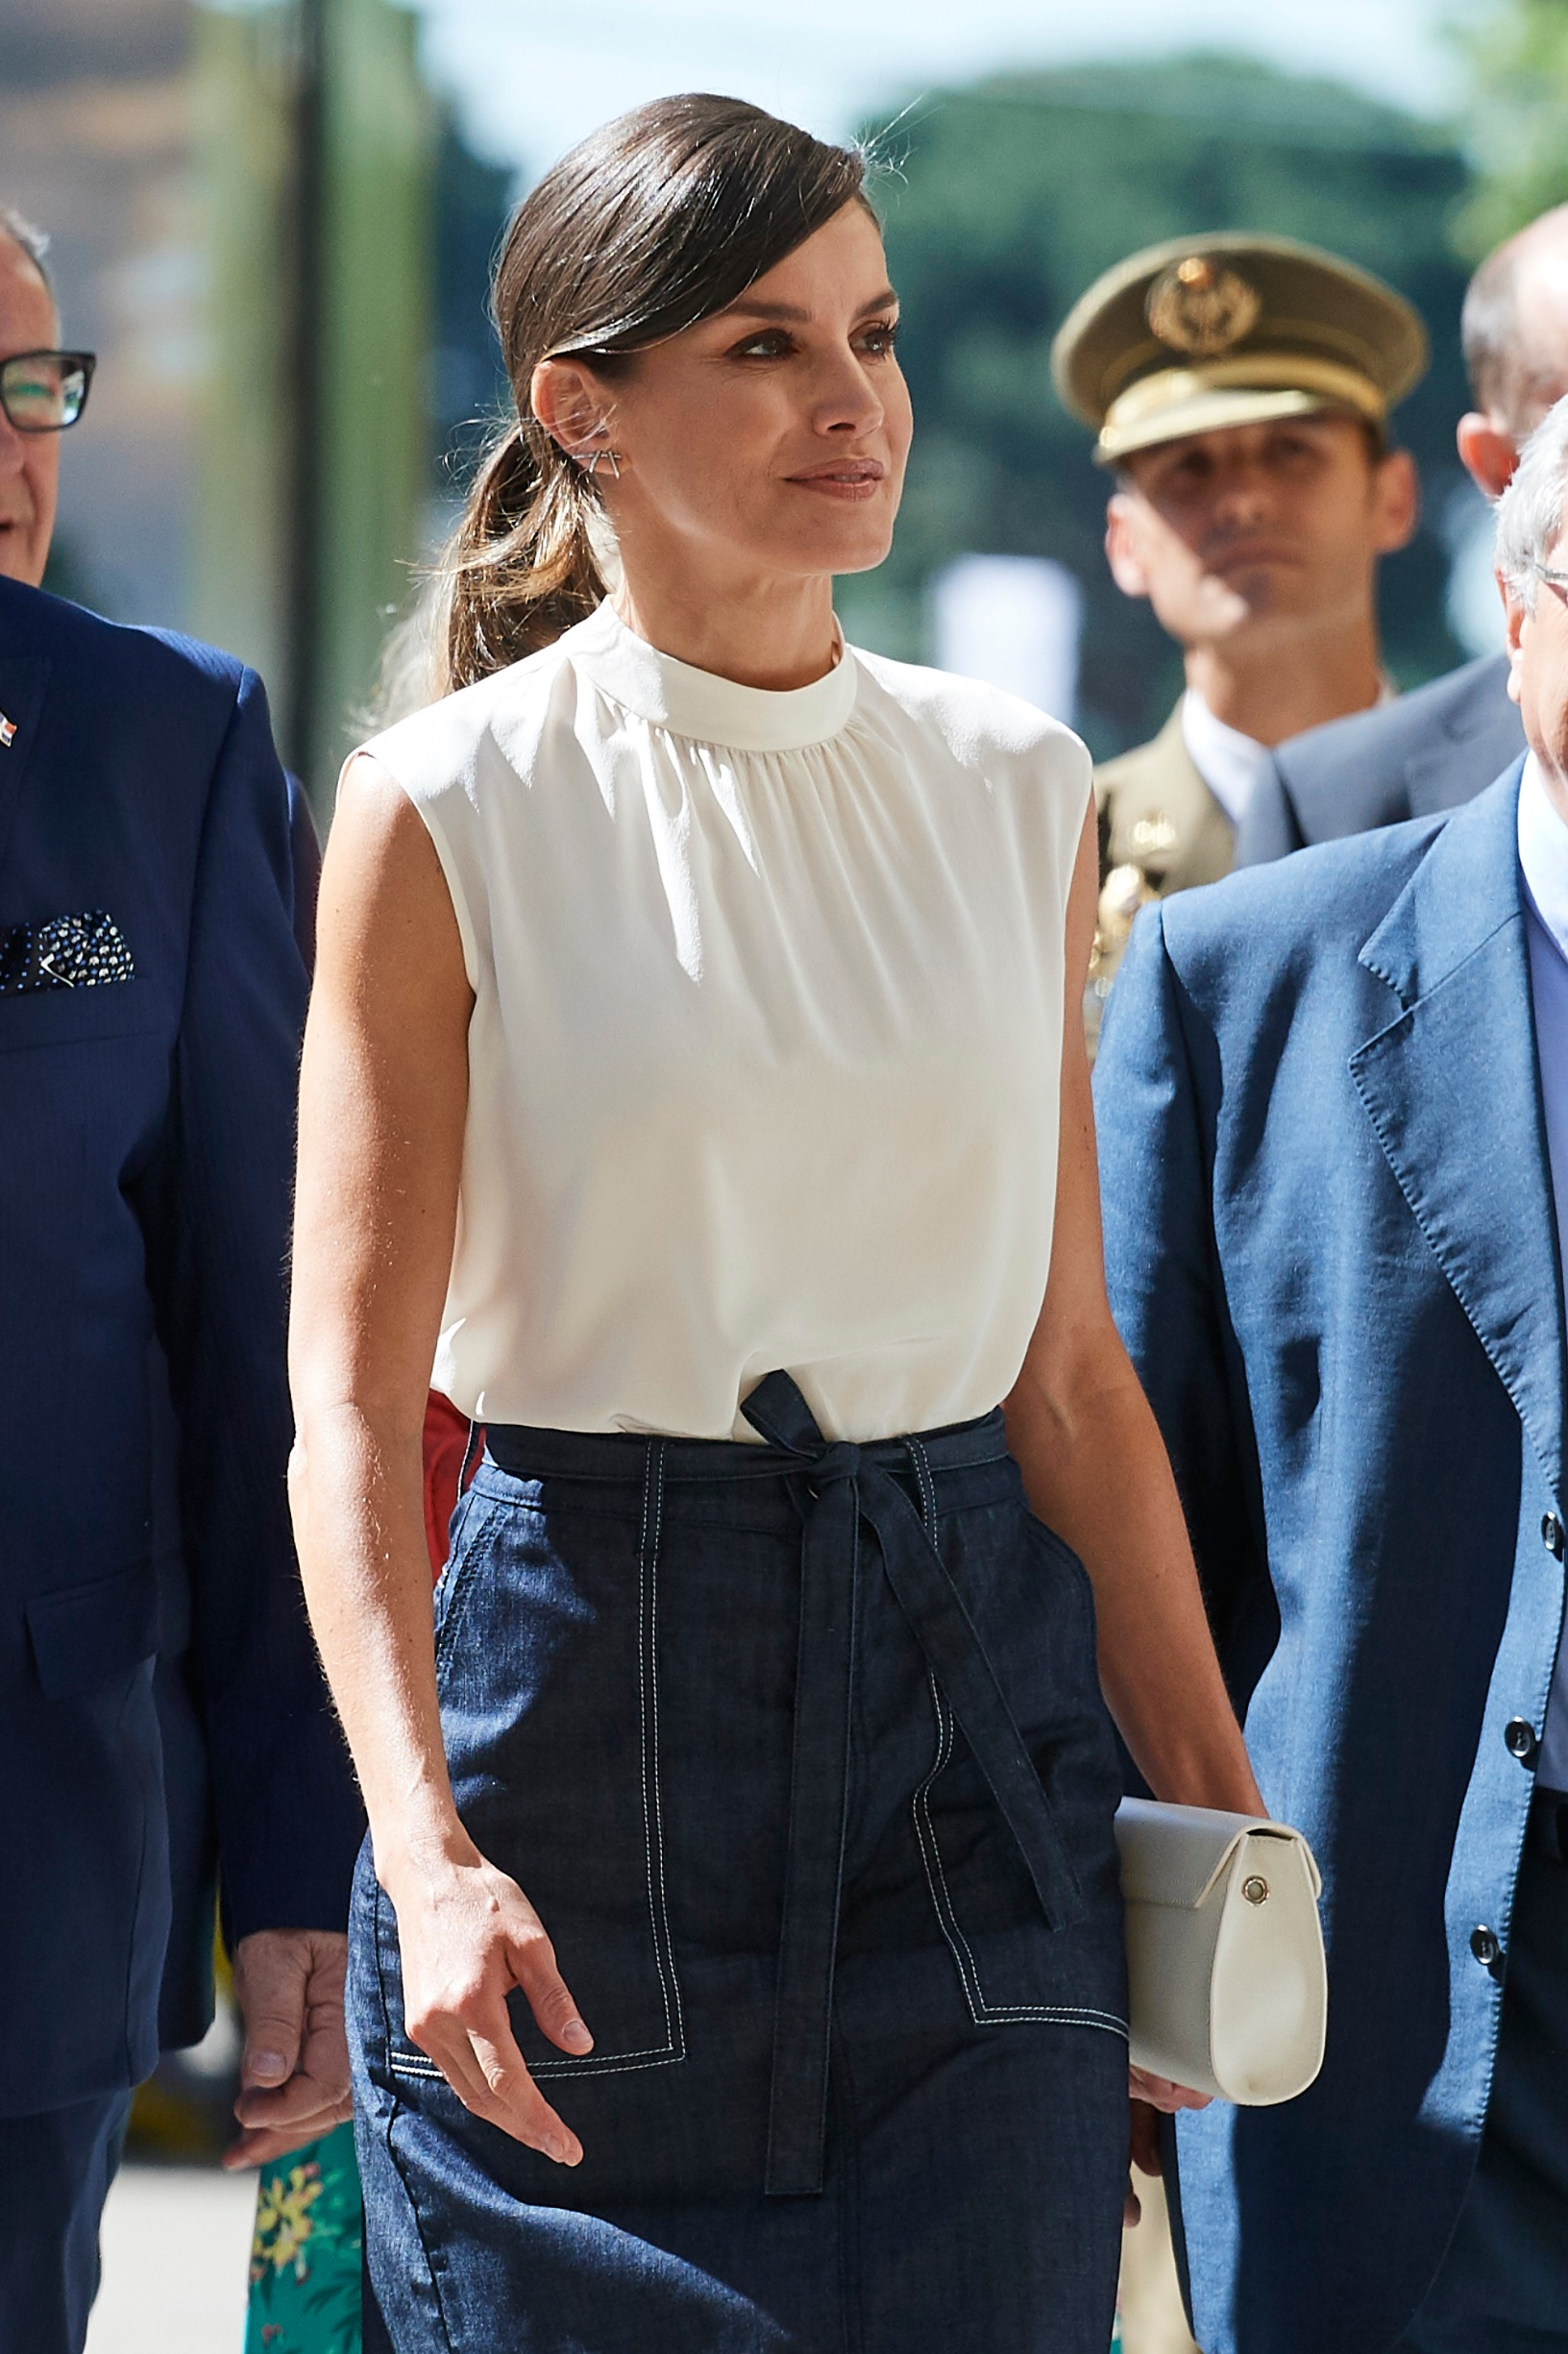 MADRID, SPAIN - MAY 31:  Queen Letizia of Spain attends the opening of Madrid Book Fair on May 31, 2019 in Madrid, Spain. (Photo by Carlos Alvarez/Getty Images)